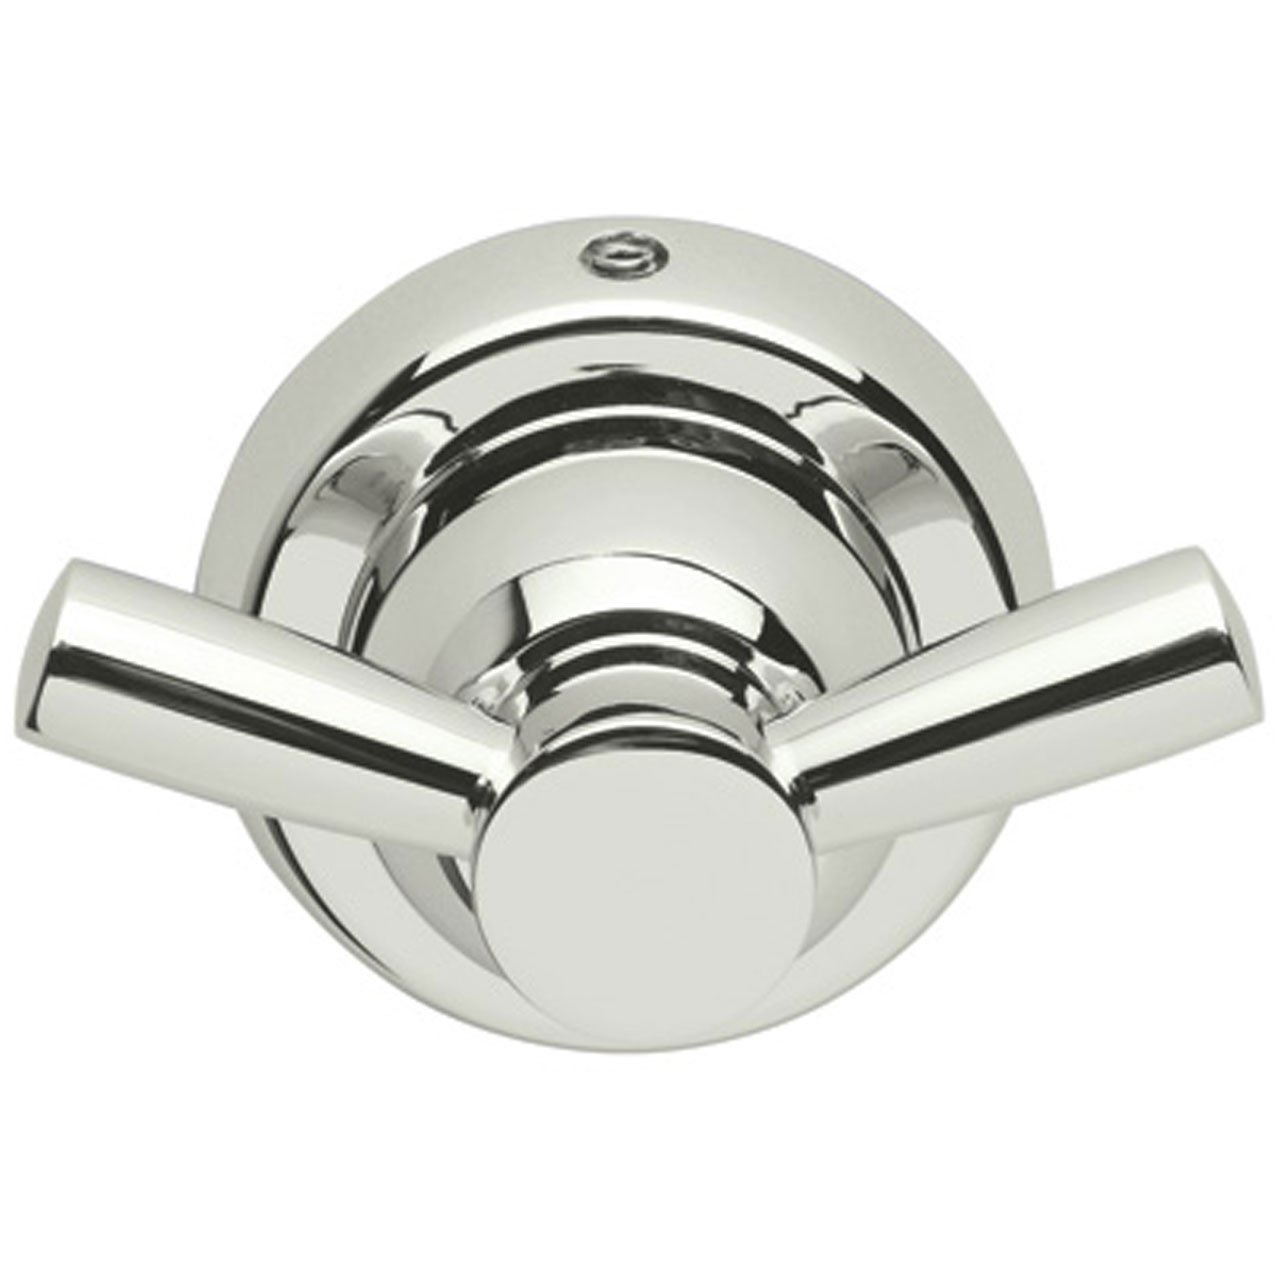 Rohl U.6422PN Perrin and Rowe Wall Mounted Double Robe Hook, Polished Nickel